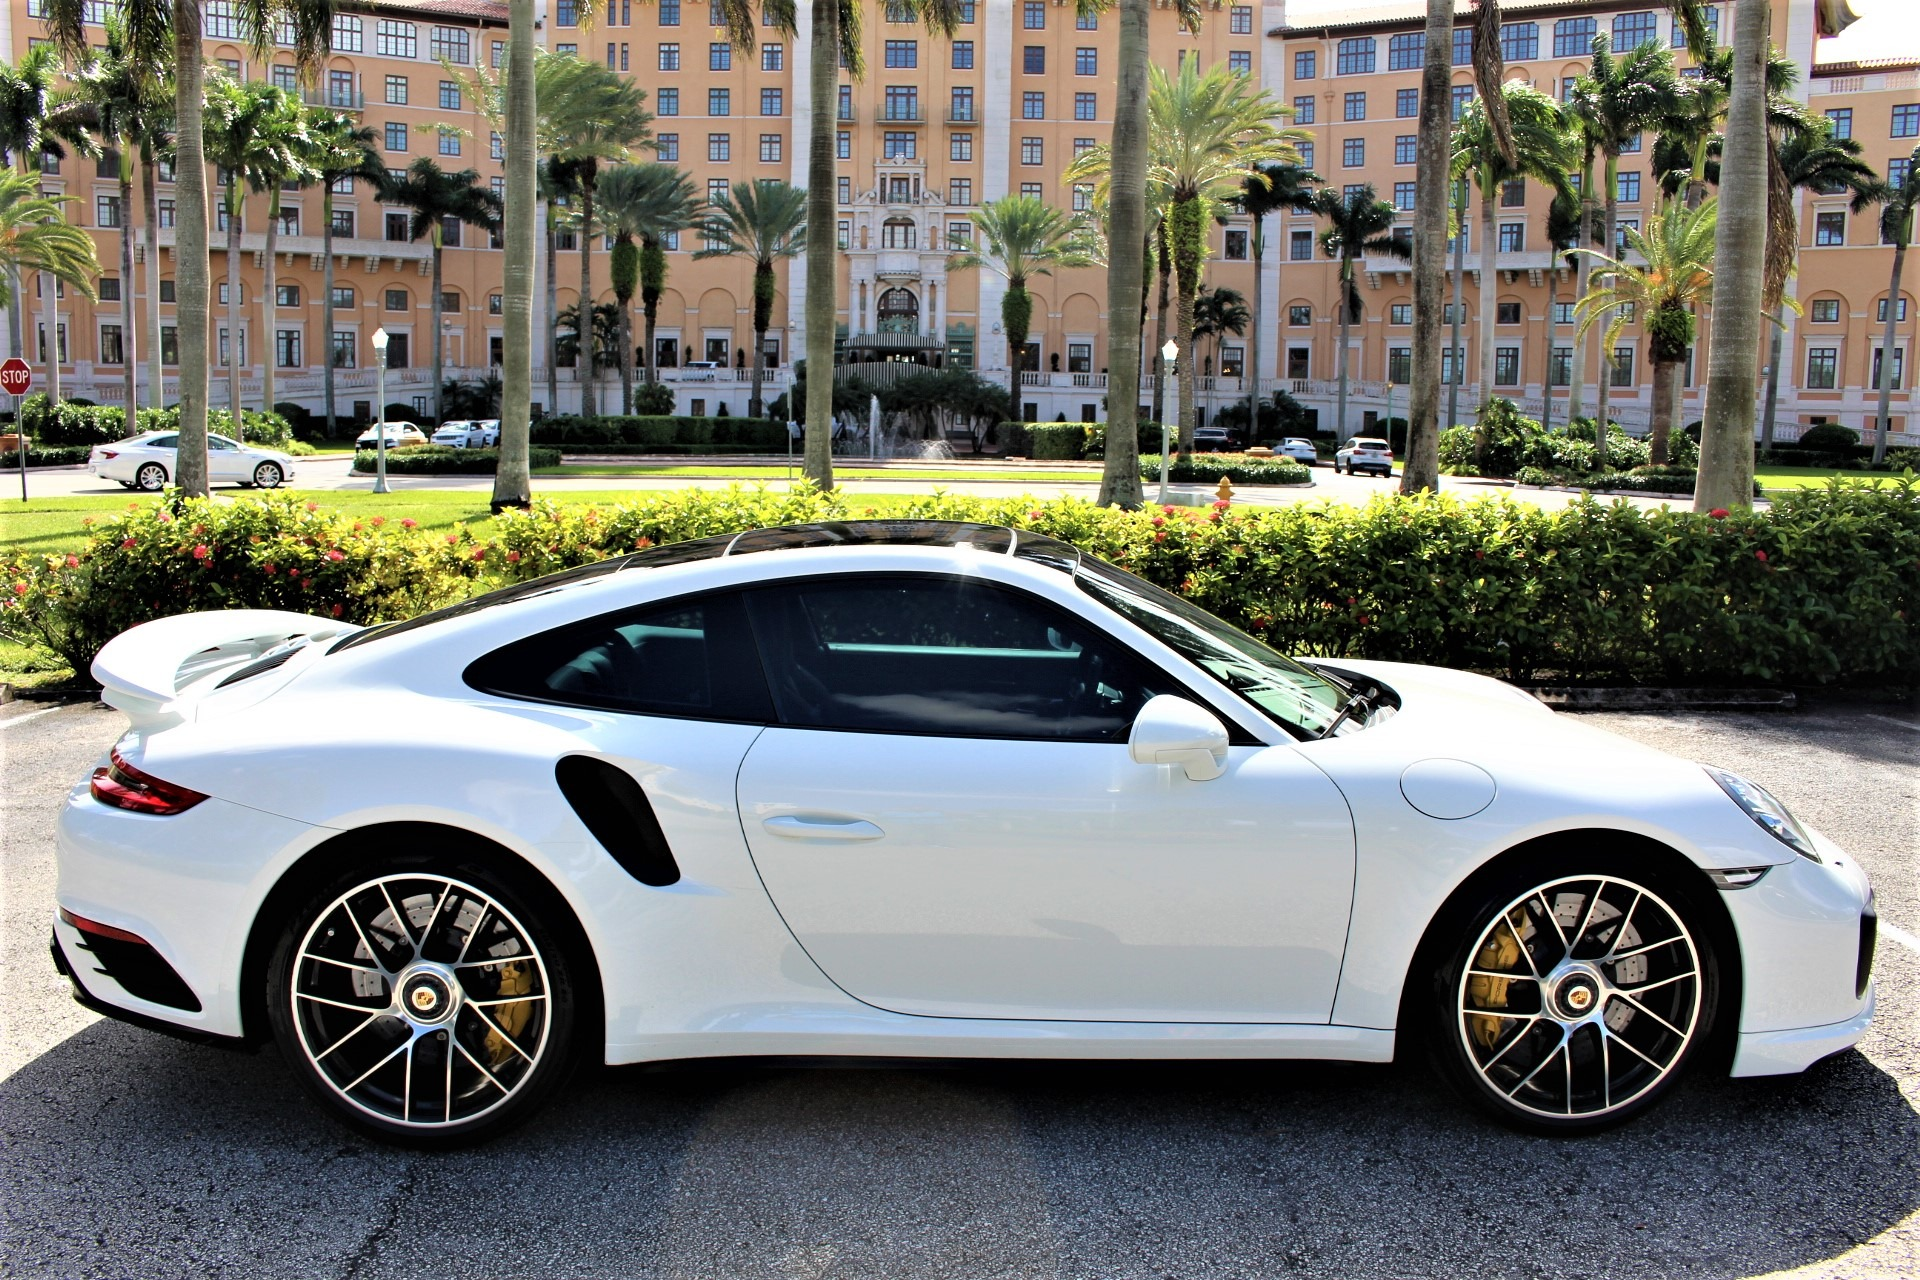 Used 2017 Porsche 911 Turbo S for sale Sold at The Gables Sports Cars in Miami FL 33146 1